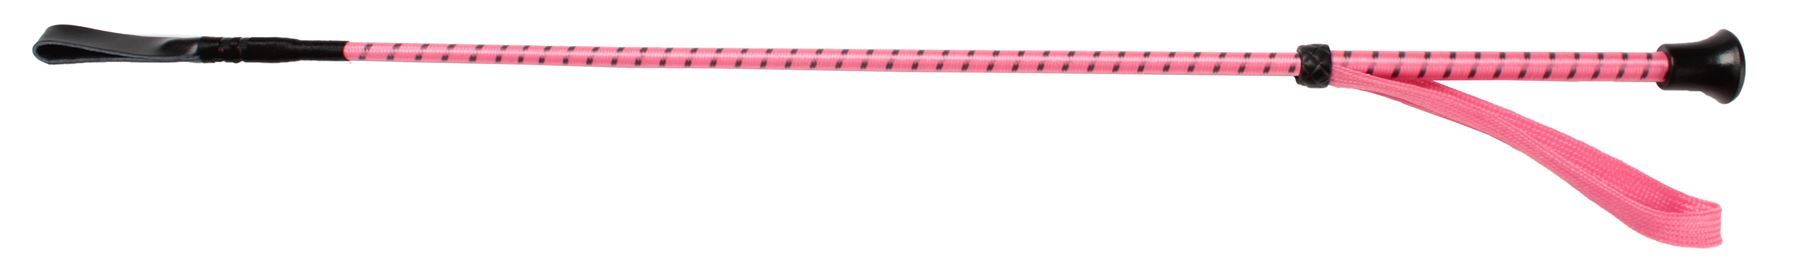 Red-Horse-Equestrian-Nylon-Race-Whip-65Cm-Durable-Rider-Training-Accessories